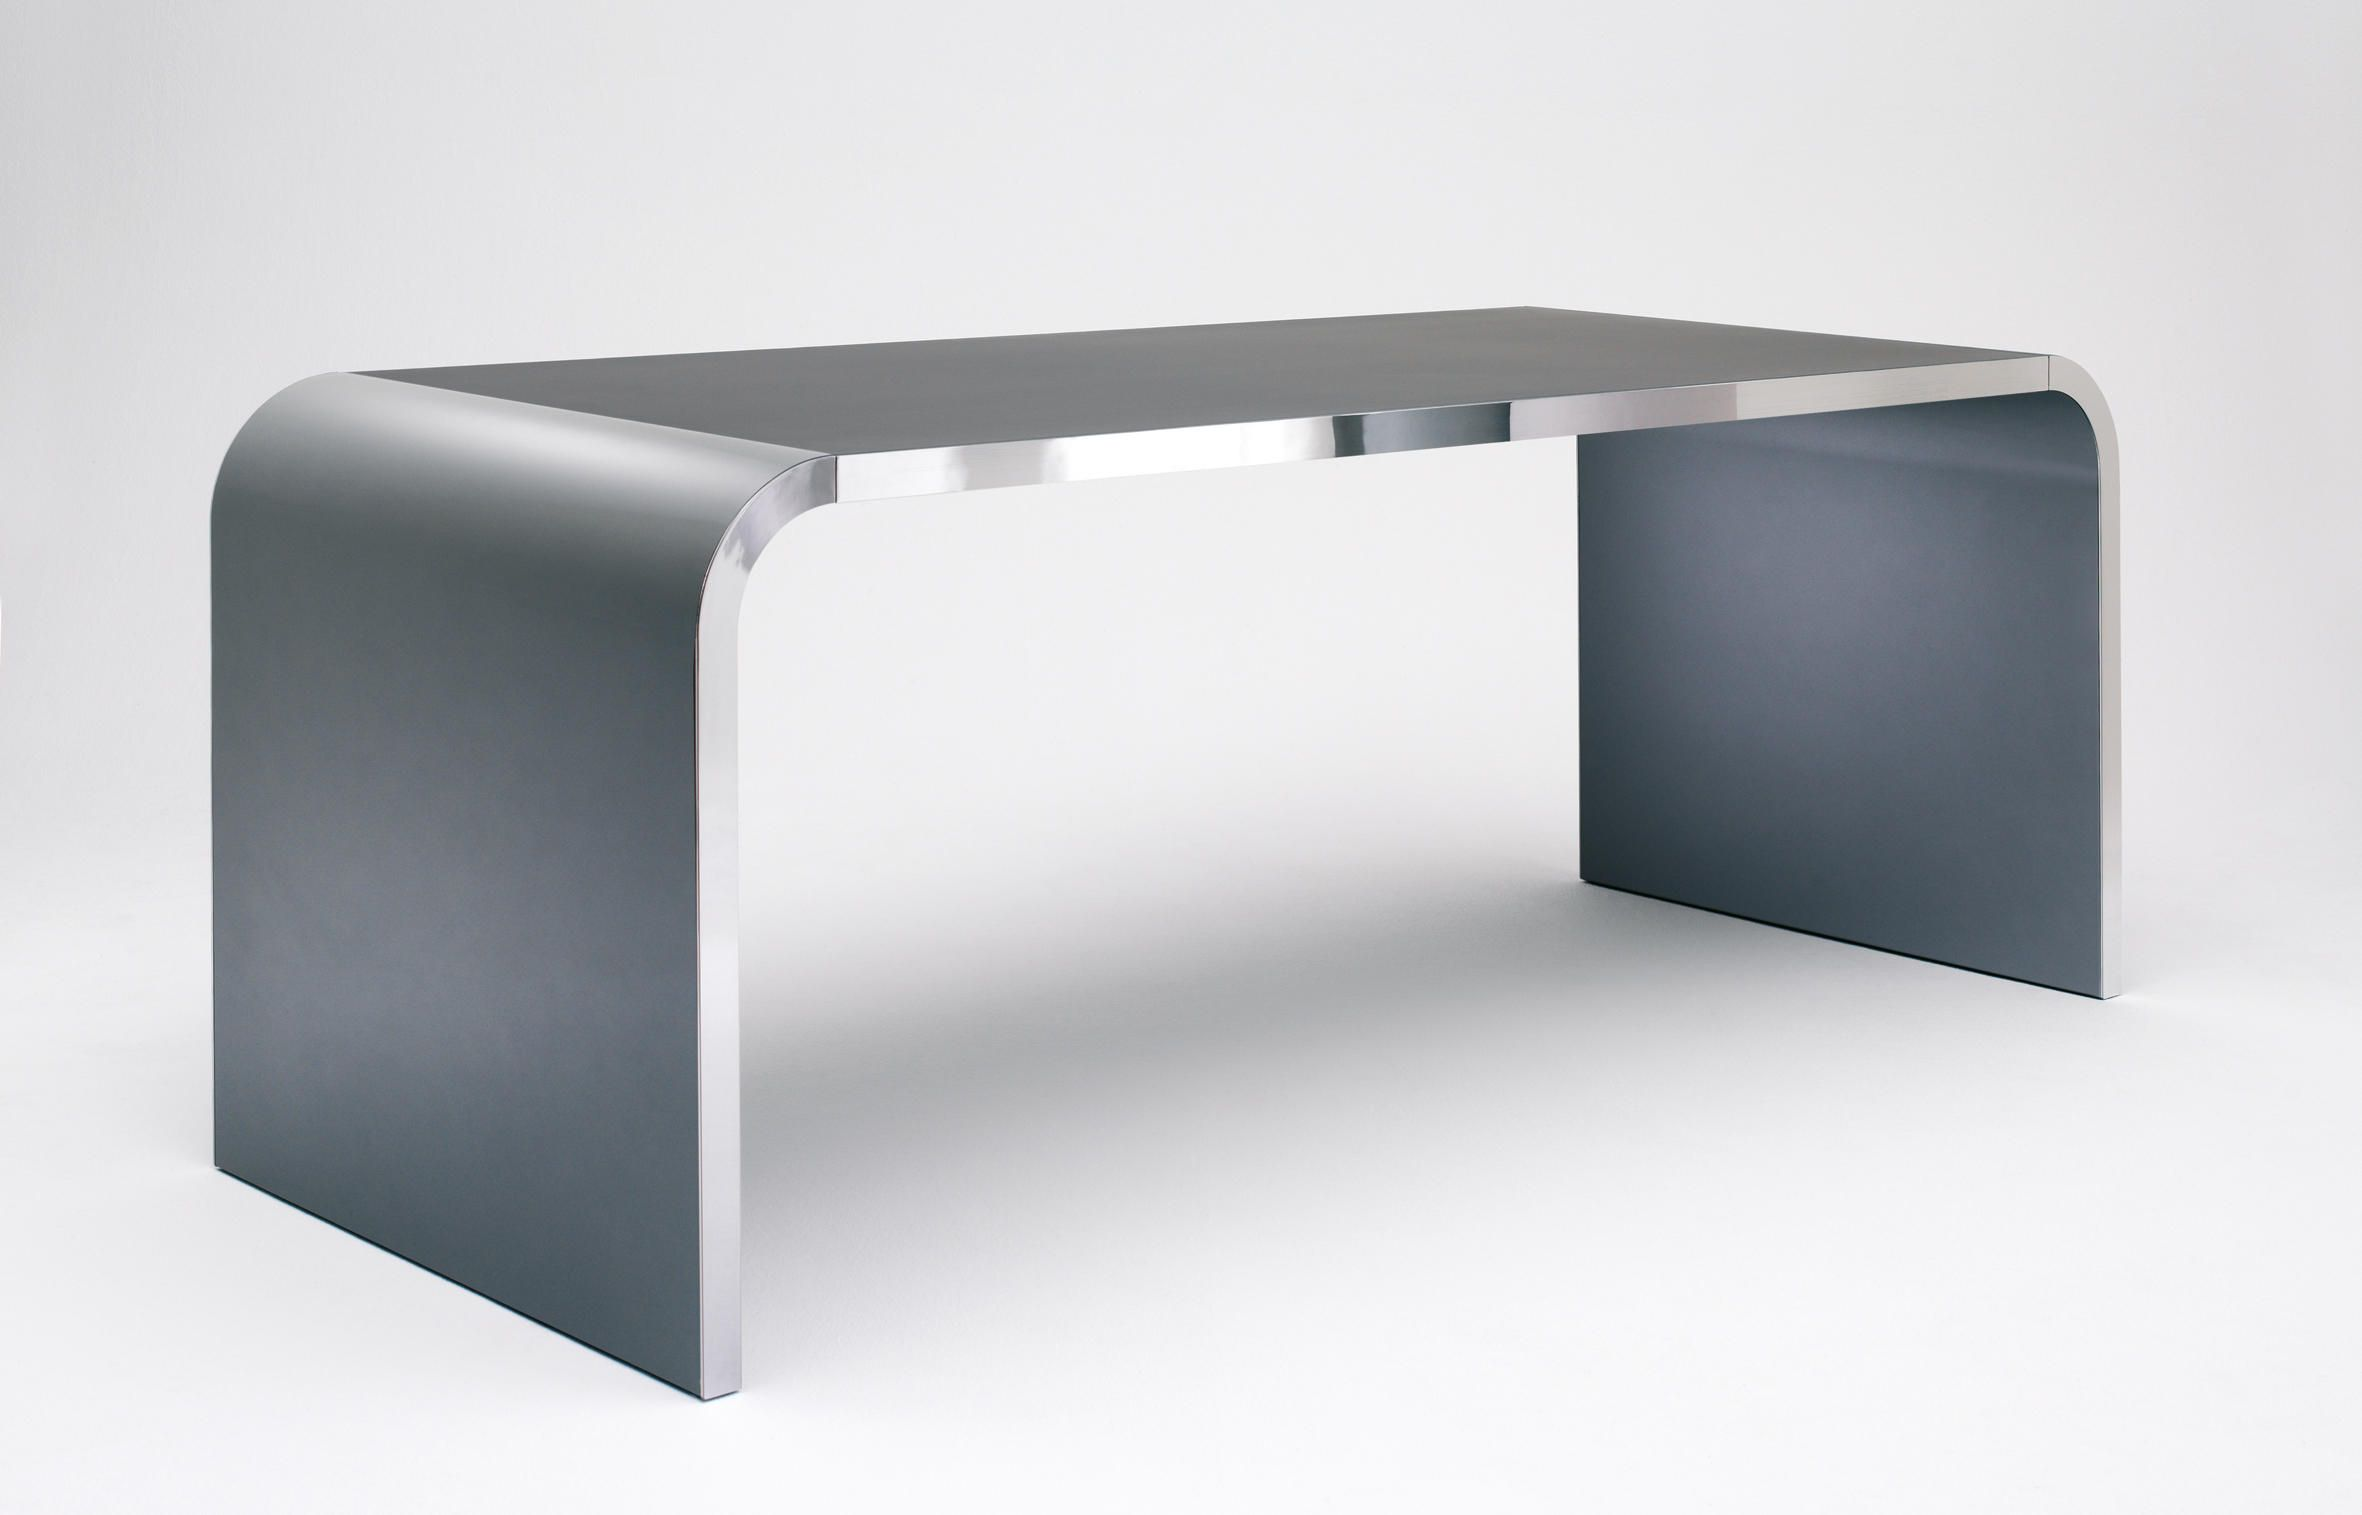 The 76 cm high desk type M10 is offered in two different dephts - 80 and 95 cm. Width is available in either 160, 180, 200 and 240 cm as a standard -..